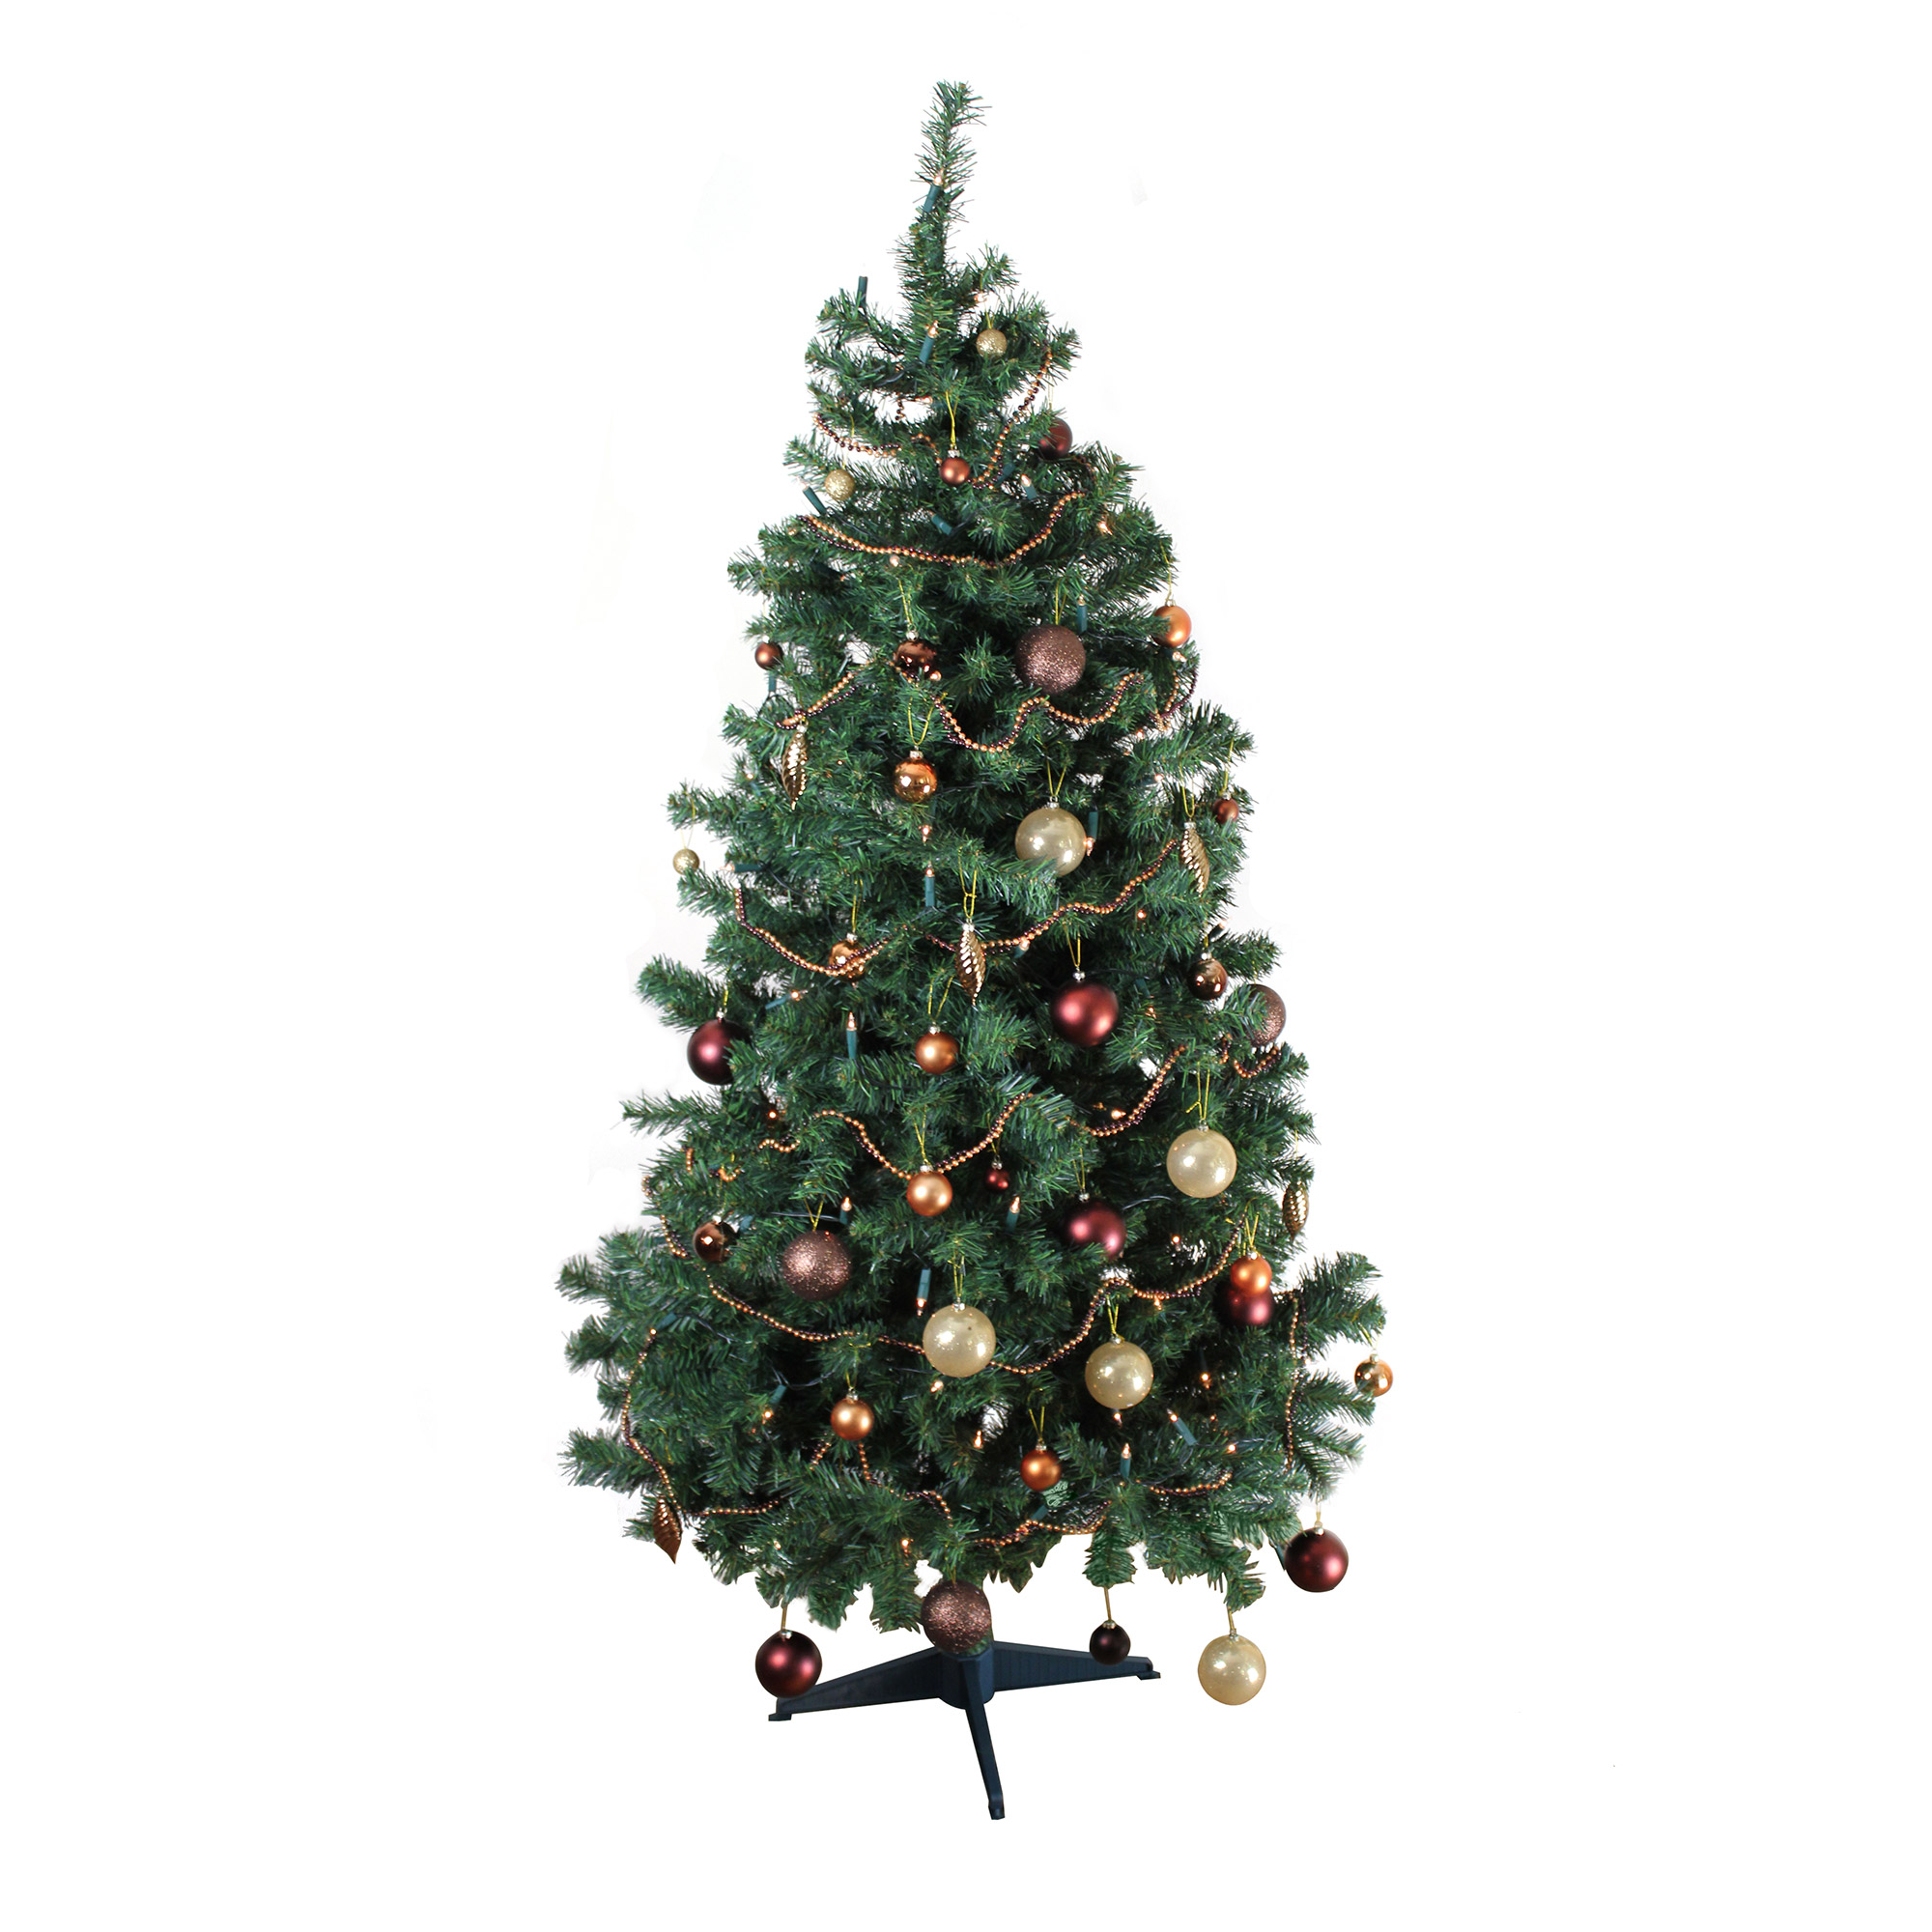 Www.walmart Christmas Trees Part - 42: Homegear Alpine Deluxe 6ft Artificial Green Christmas Xmas Tree - Walmart .com